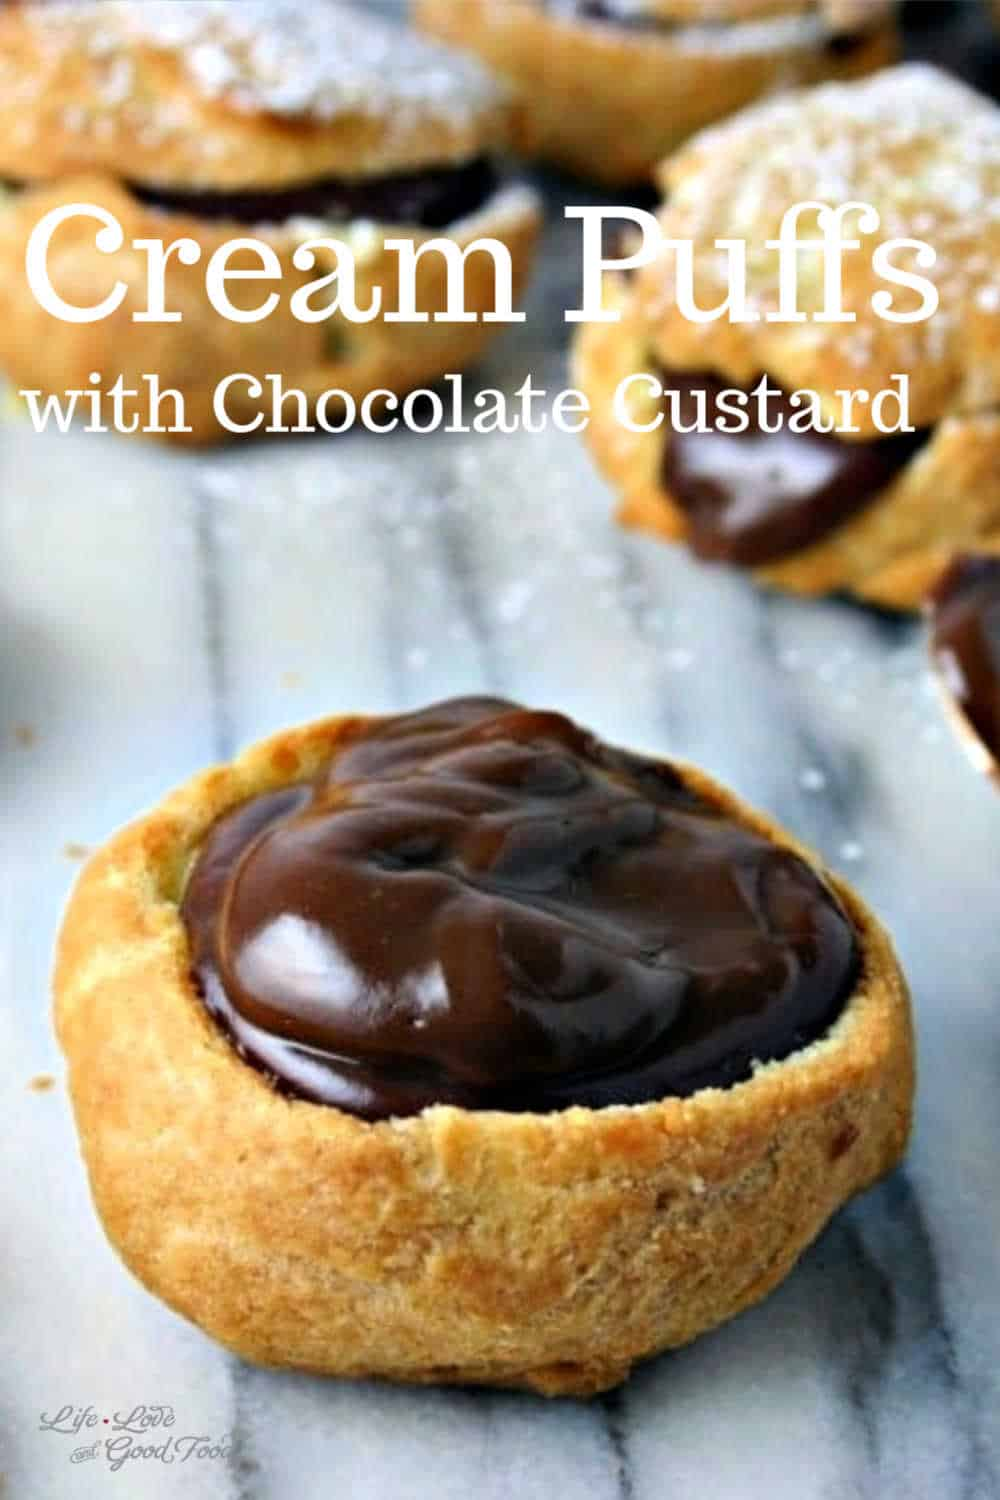 A decadent French pâte à choux (pastry shaped like a cabbage) or simply Cream Puffs with Chocolate Custard! Light and airy, these chocolate-filled cream puffs are creamy and delicious